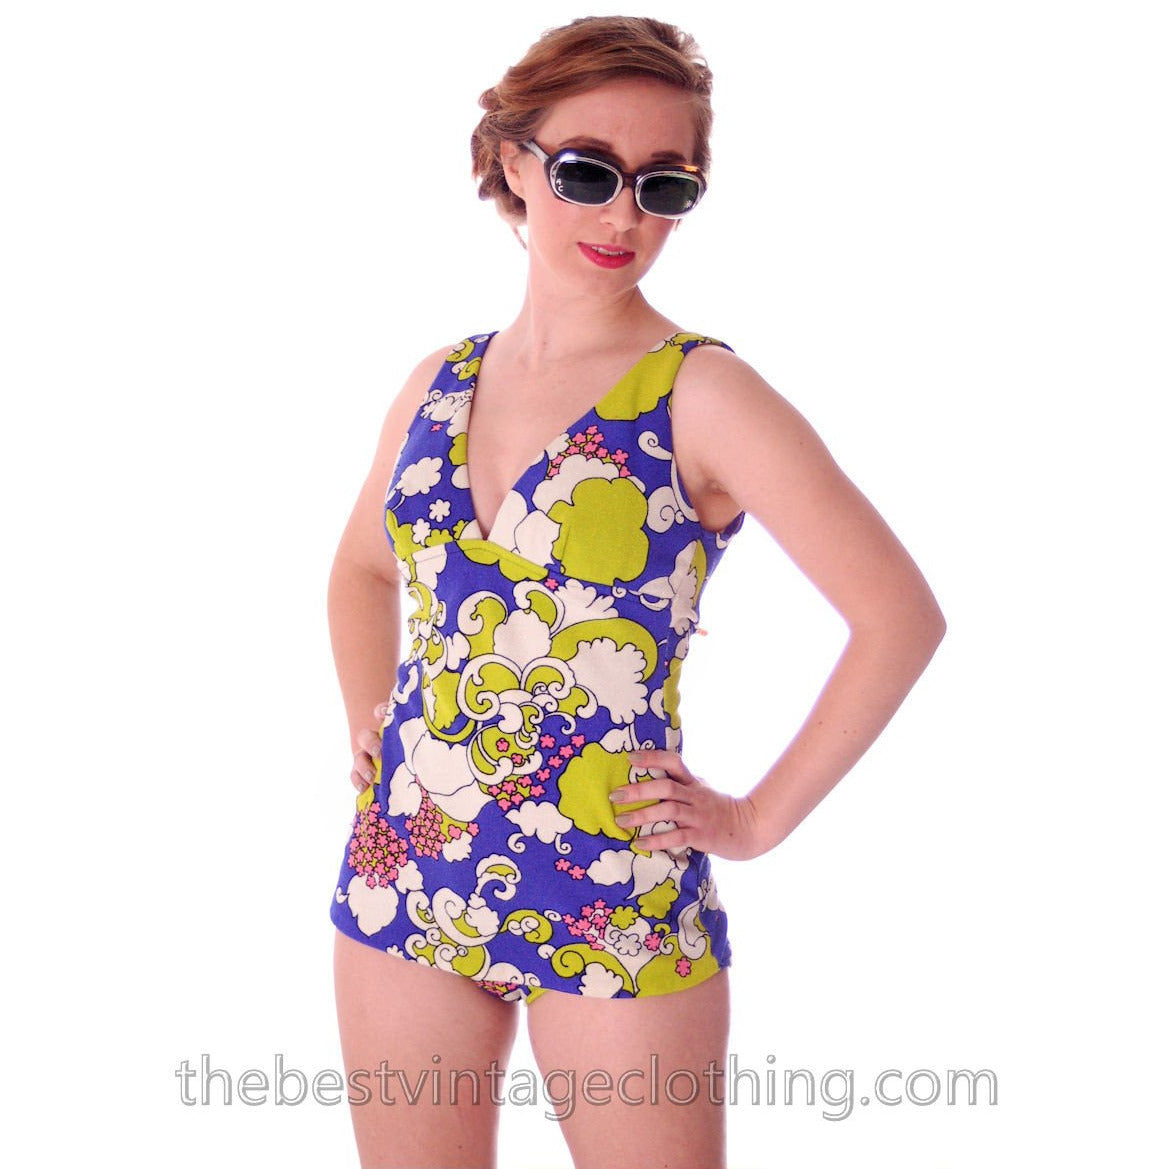 Vintage Swim Suit 1960s Bathing Suit 1 PC Psychadelic Print S Floral California - The Best Vintage Clothing  - 1